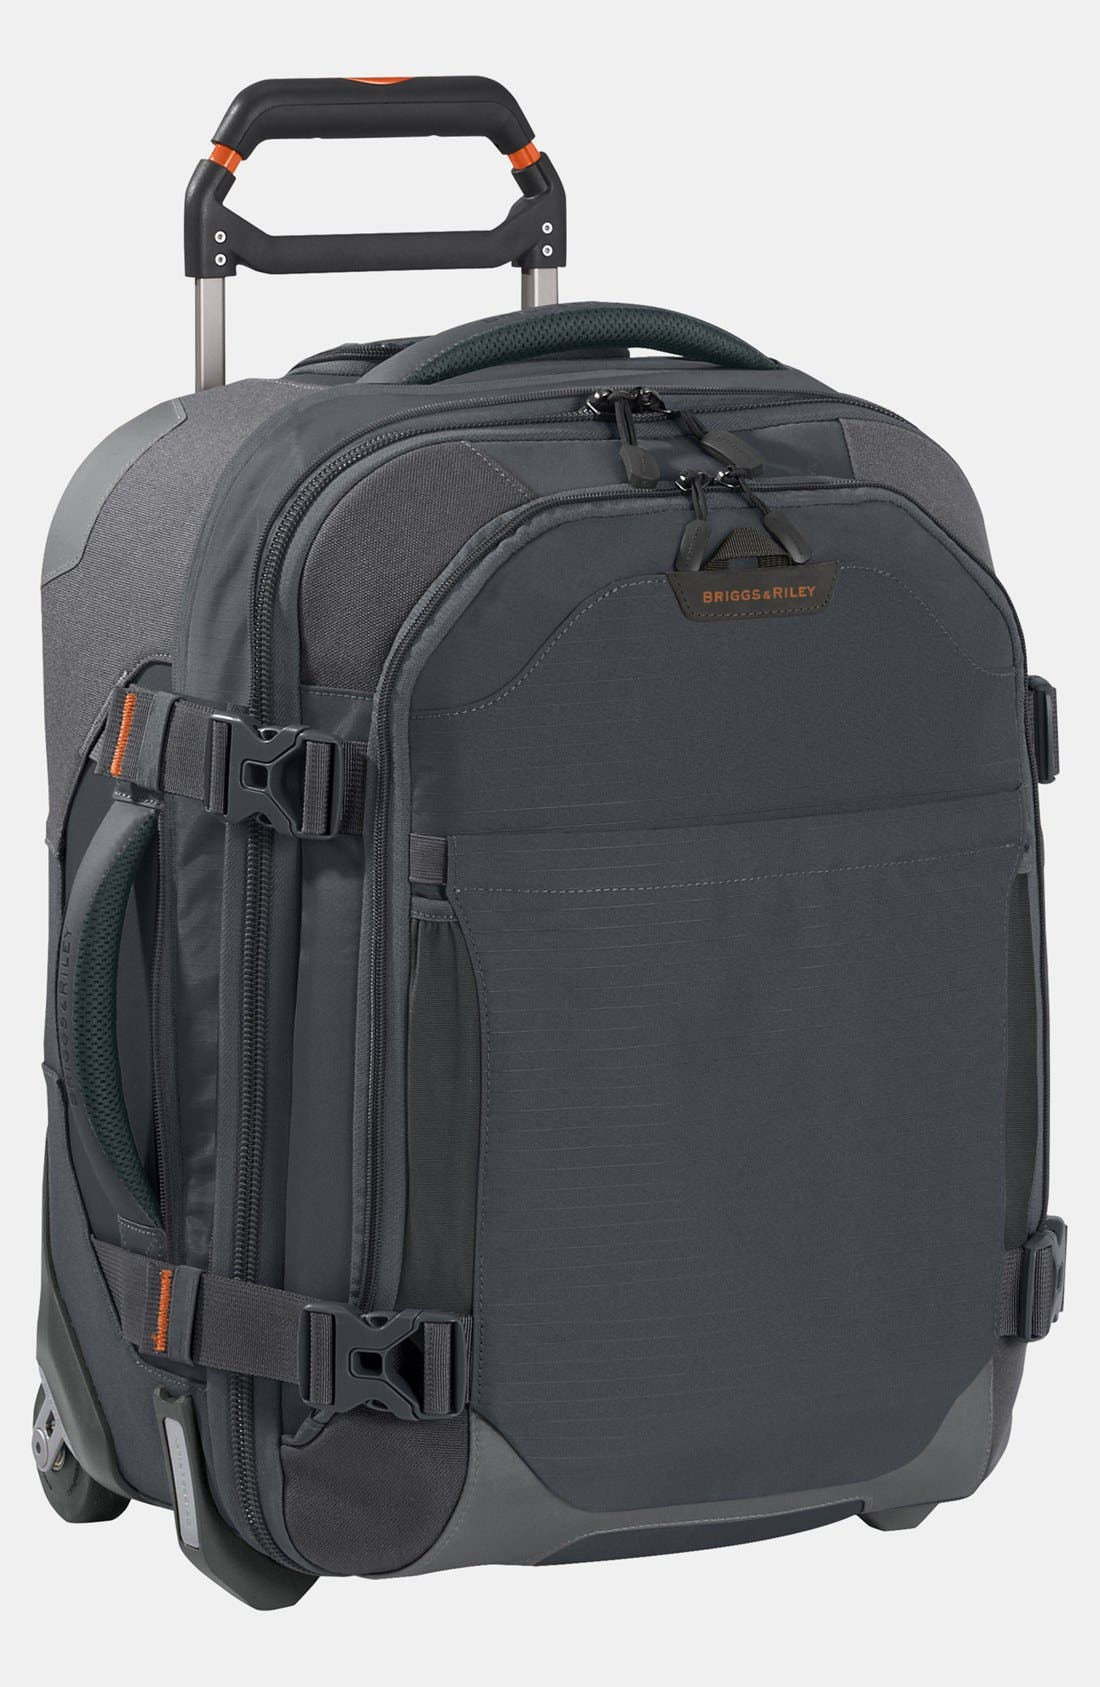 Main Image - Briggs & Riley 'Explore' Wide Body Carry-On